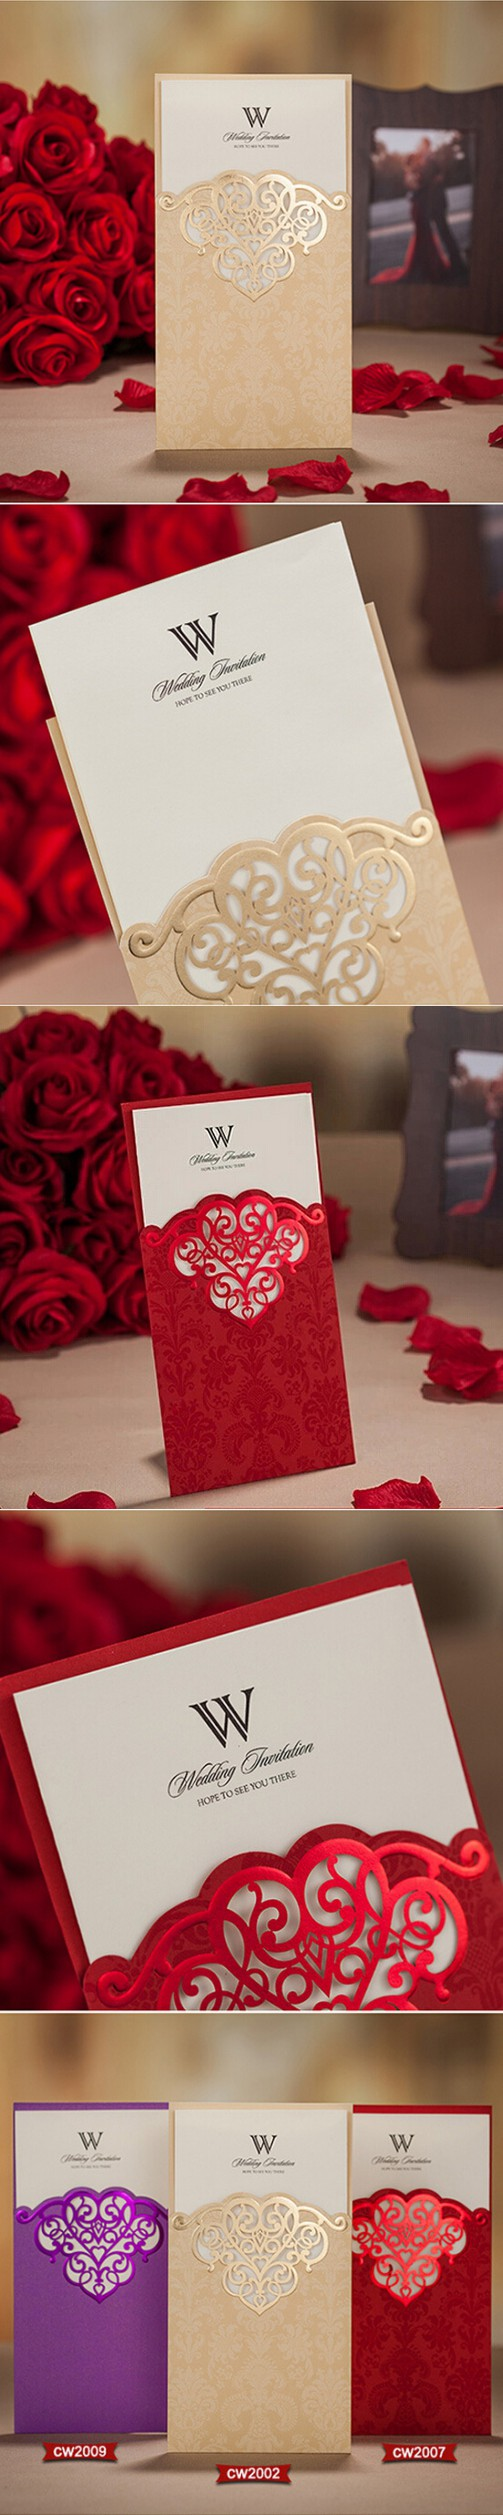 10 pieces/lot) New Wedding Invitations Card Laser Cutting Sweet ...